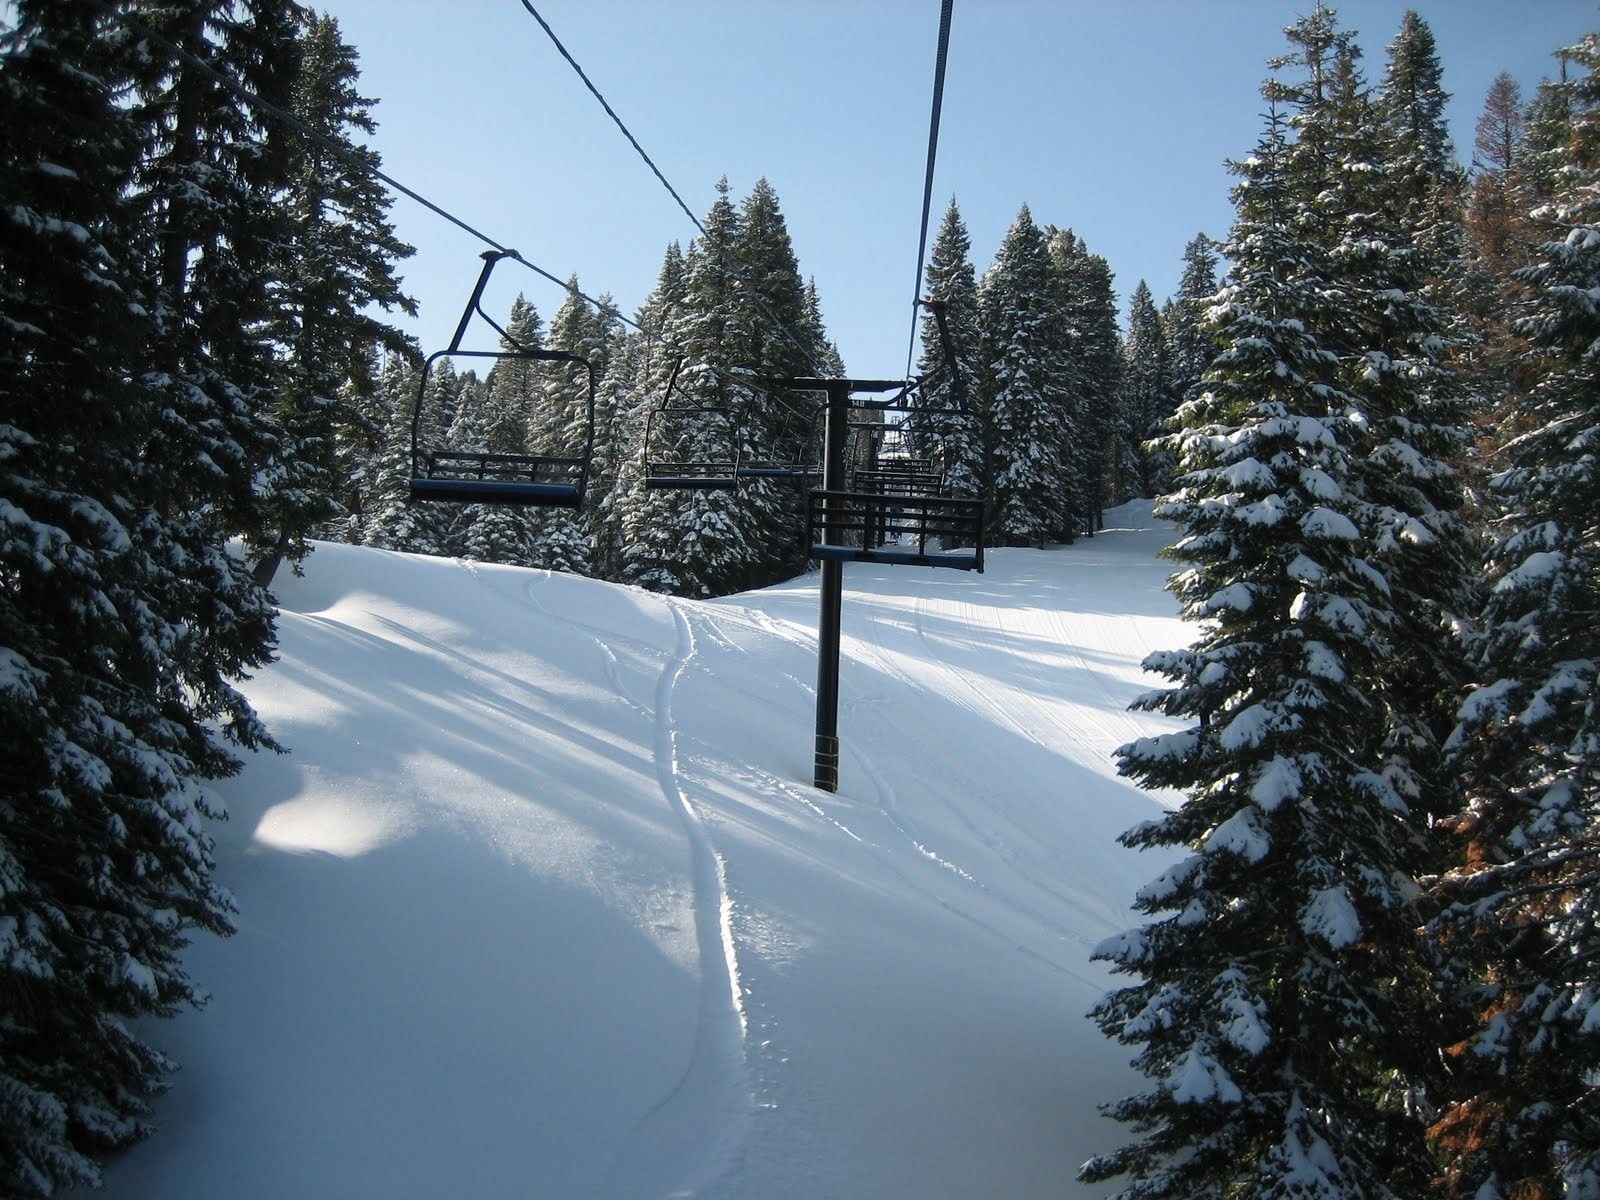 Chairlift at Bluewood, WAundefined